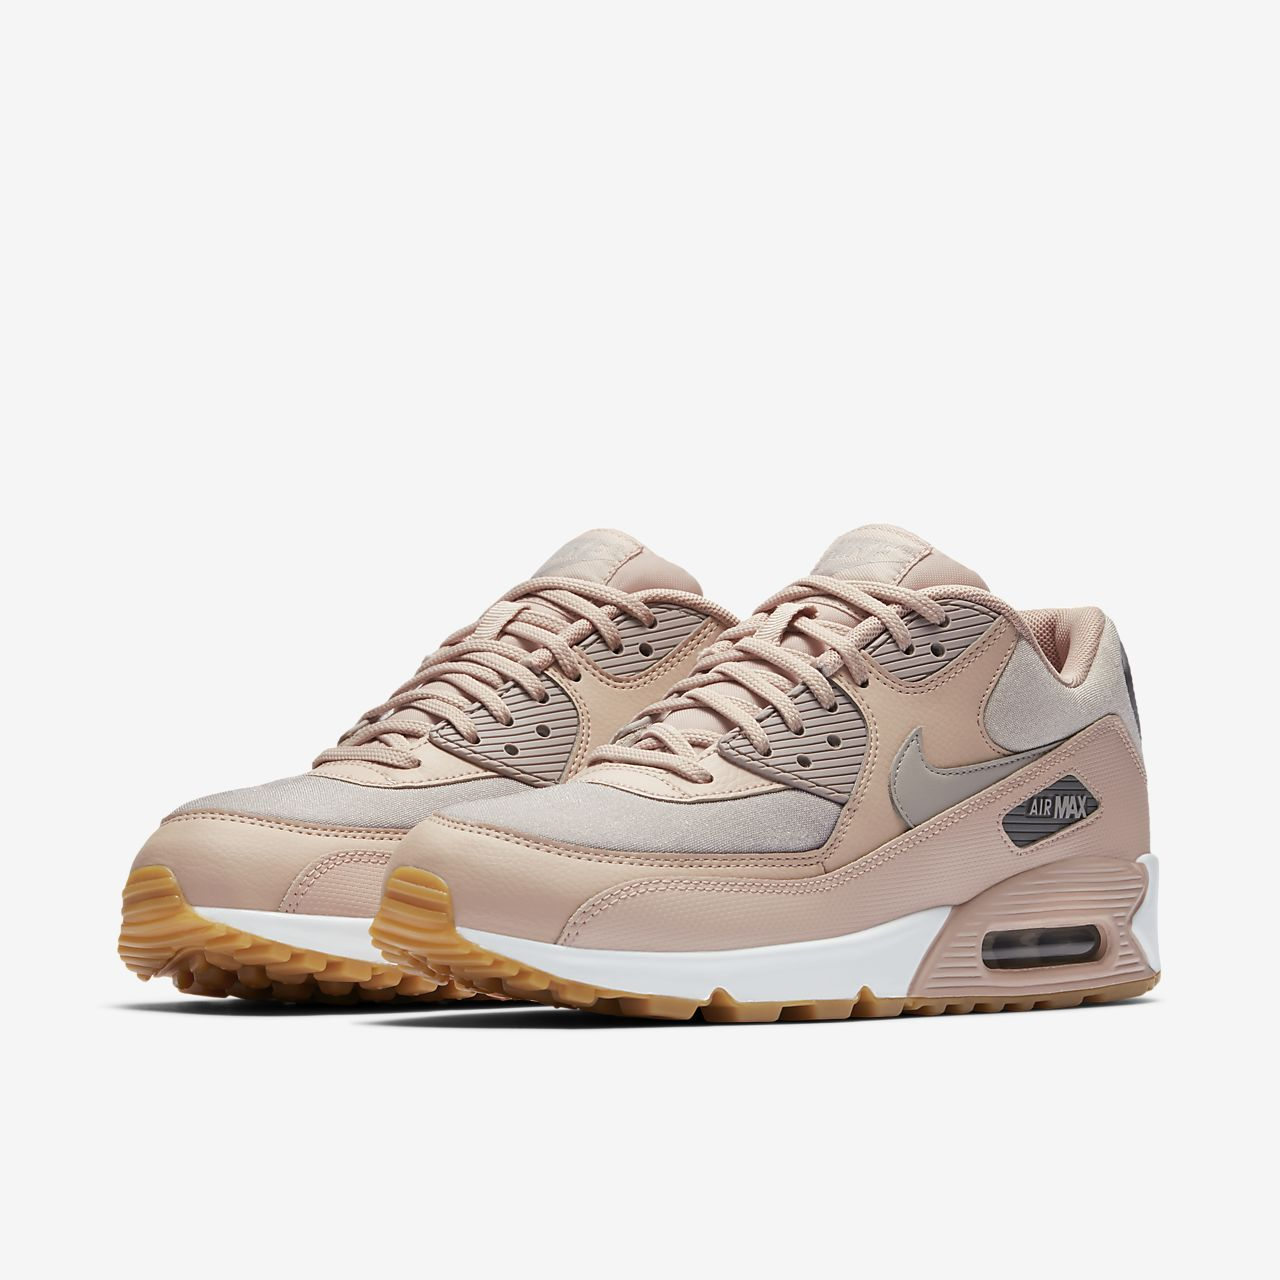 Autor ancla incluir  Nike Air Max 90 Women's Shoe | Nike air max 90 women, Nike air max for  women, Nike air max 90